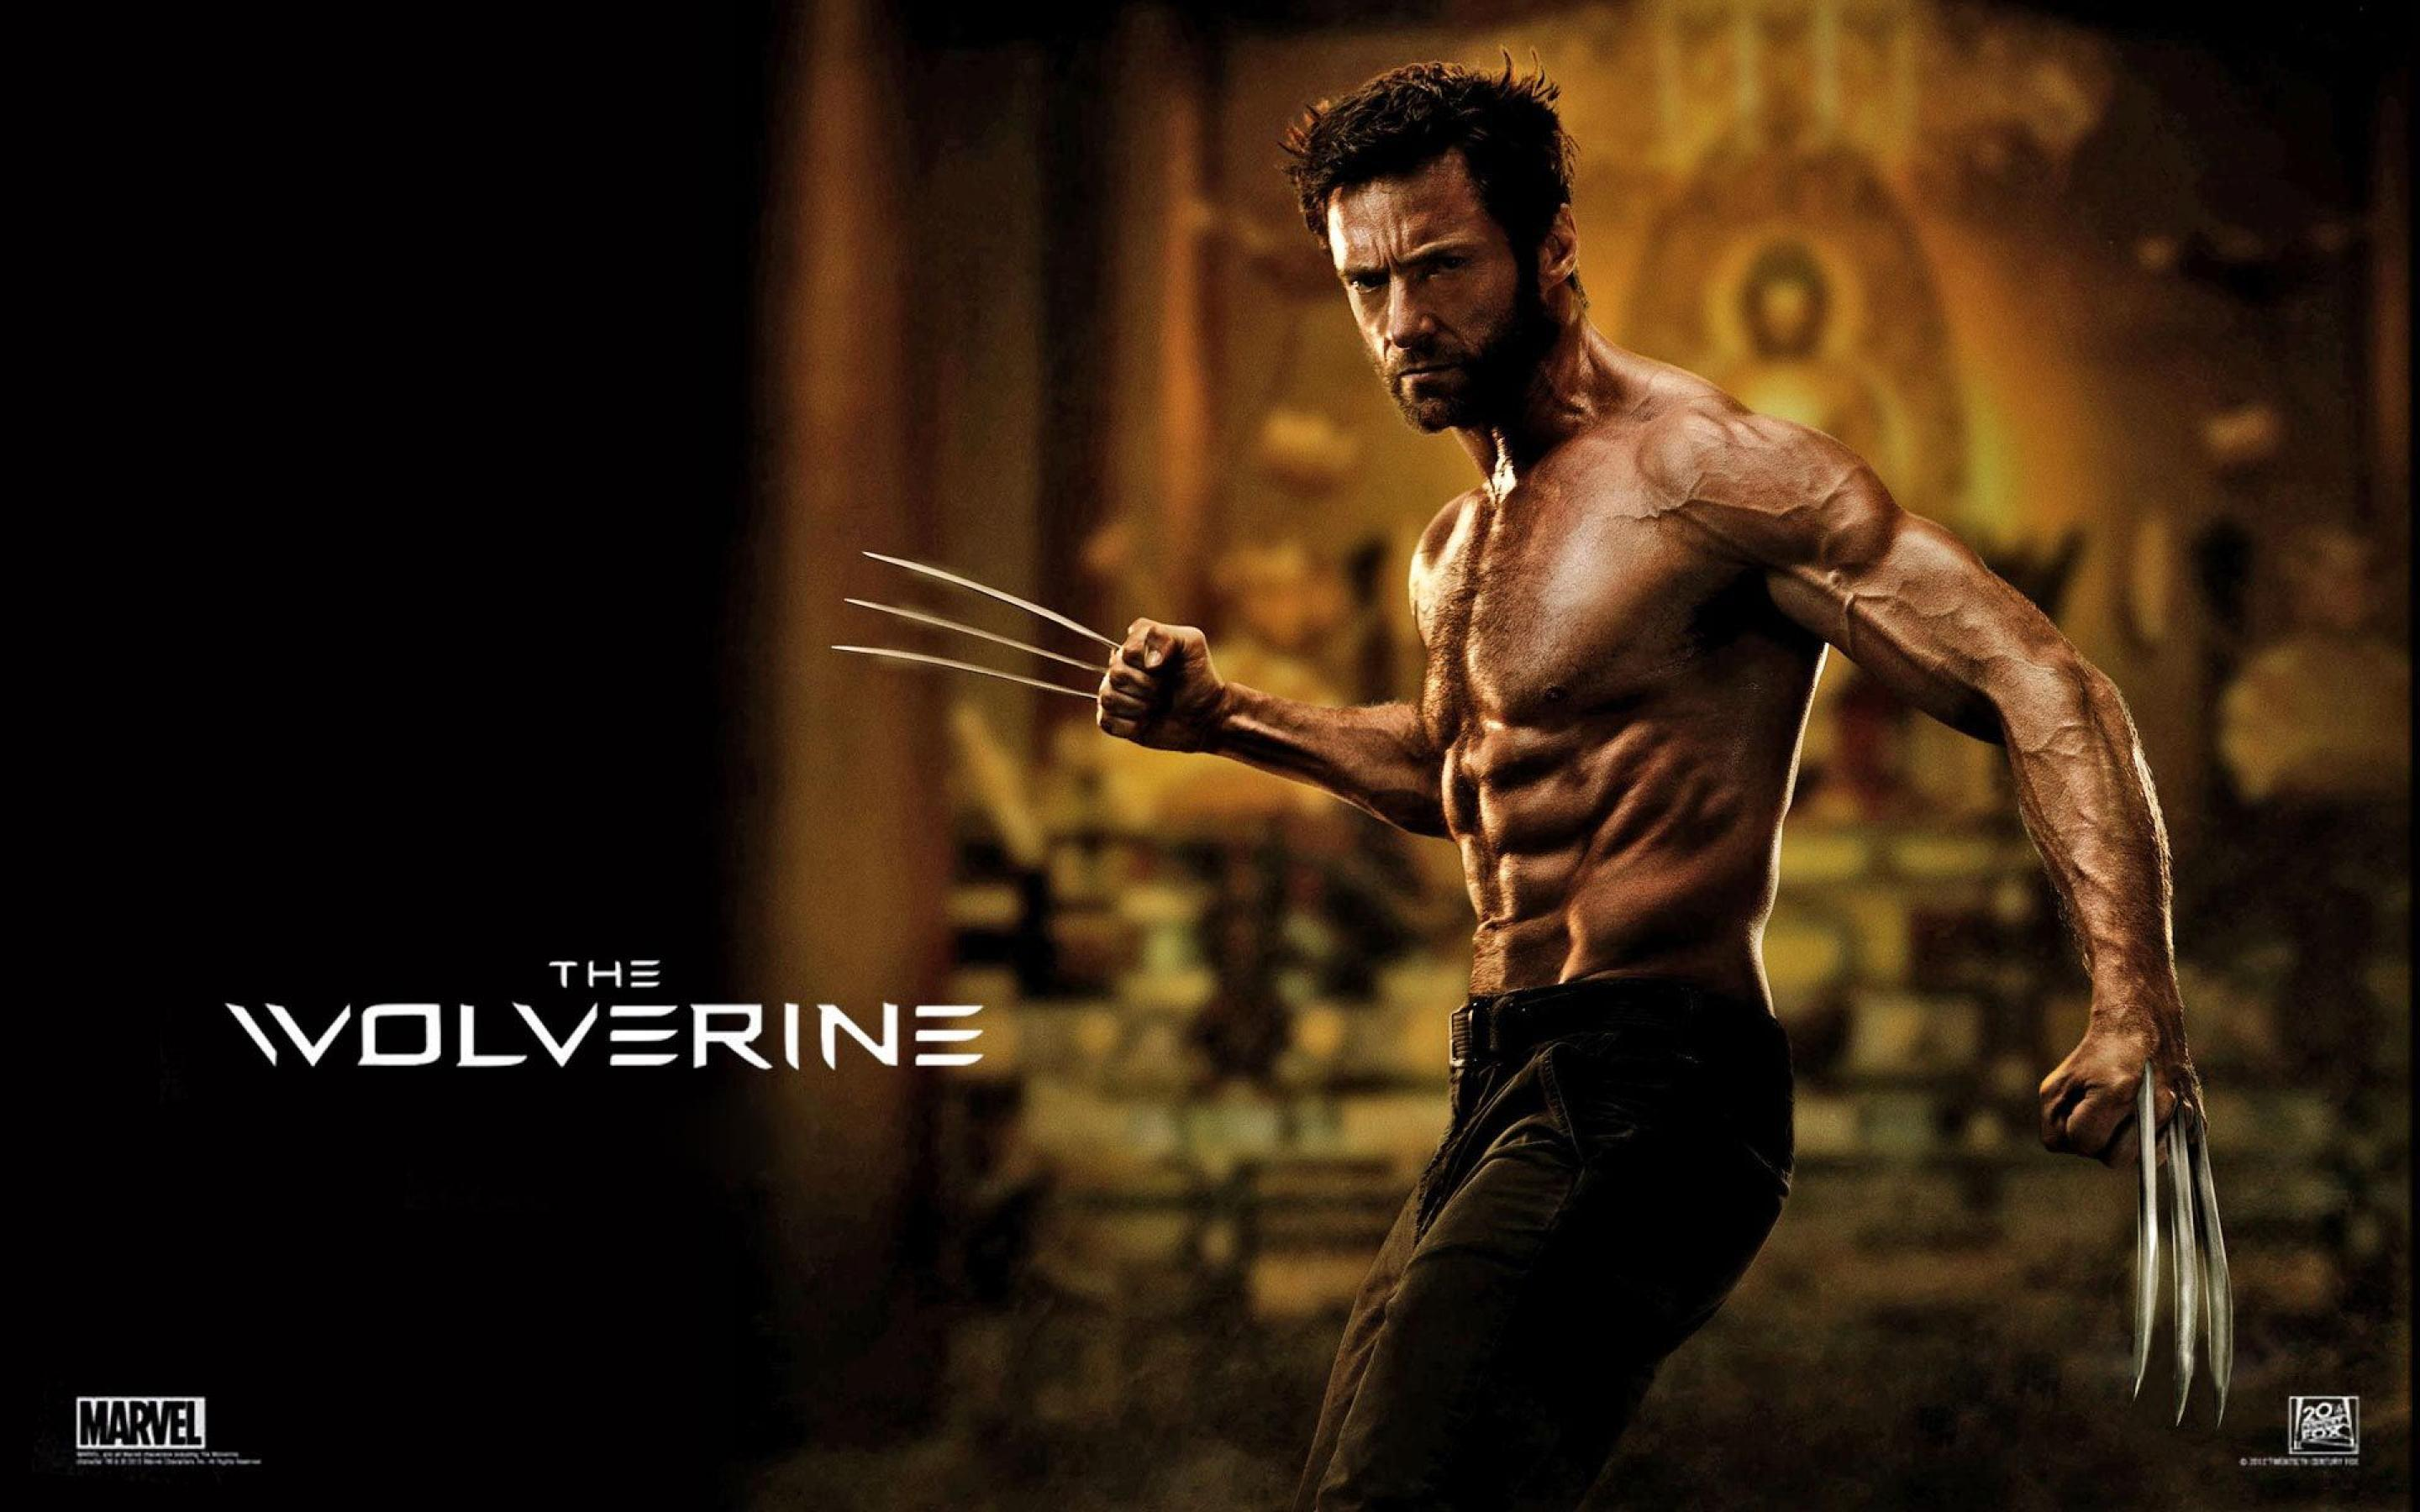 Wolverine Wallpapers - Full HD wallpaper search - page 6